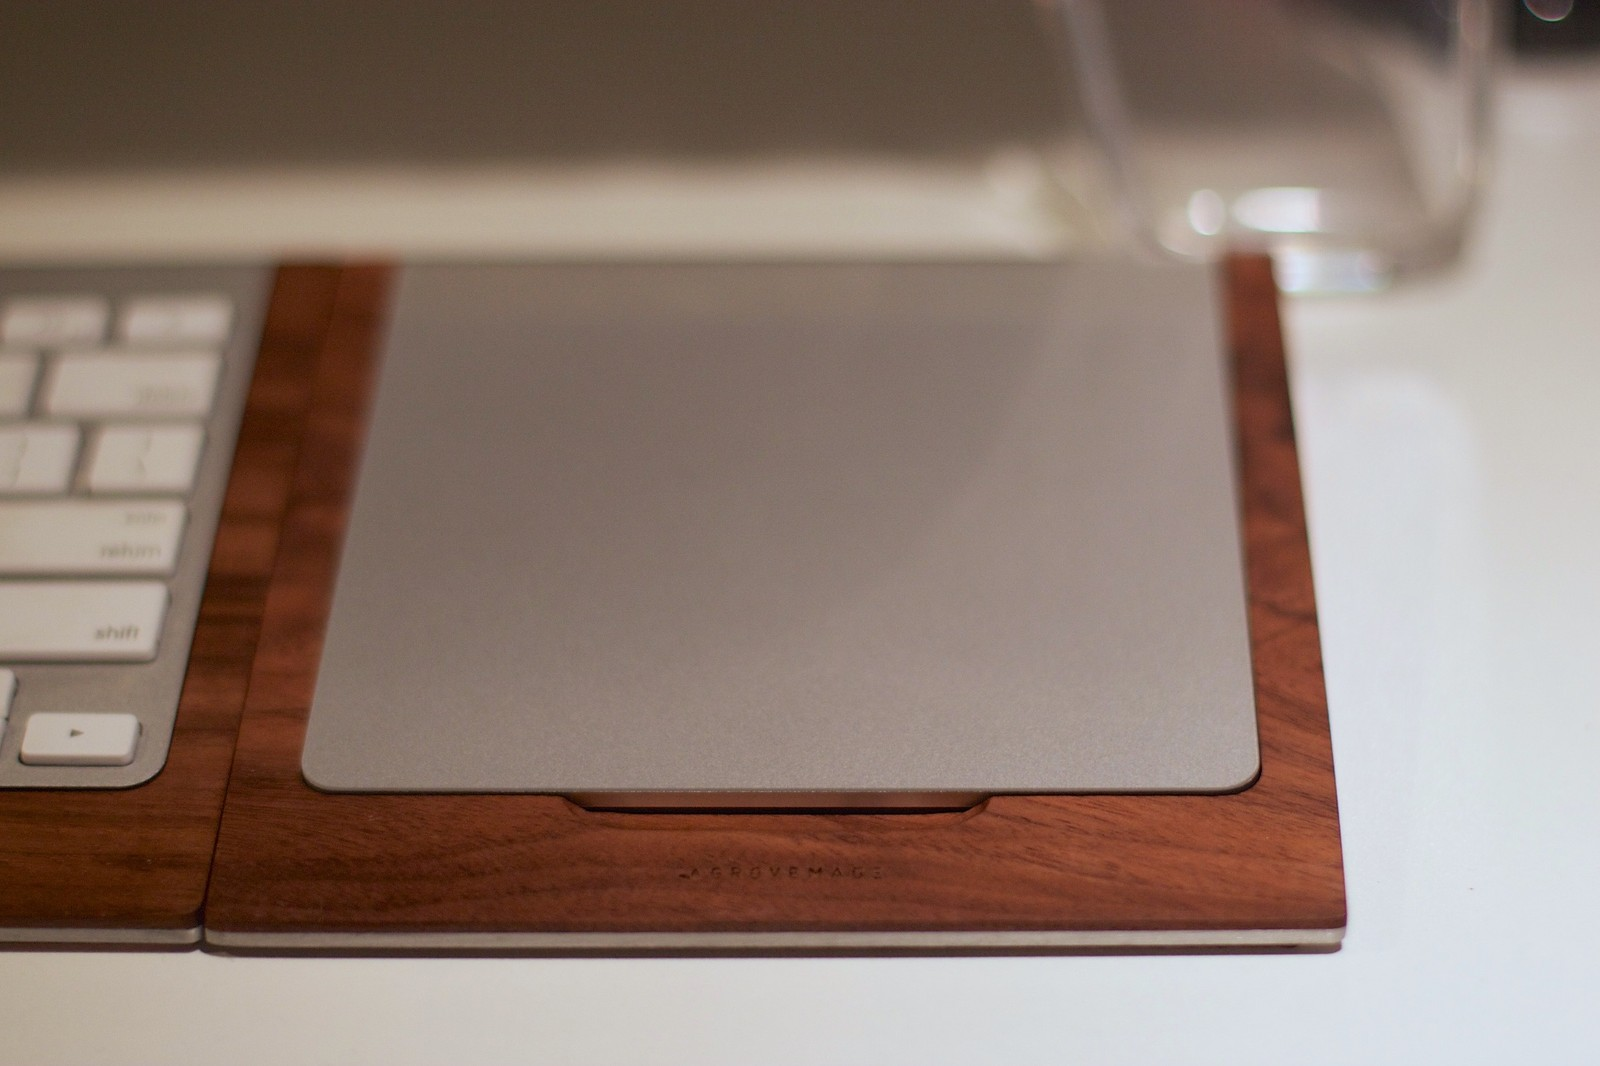 Grovemade Keyboard Tray And Trackpad Tray For Mac Review Imore